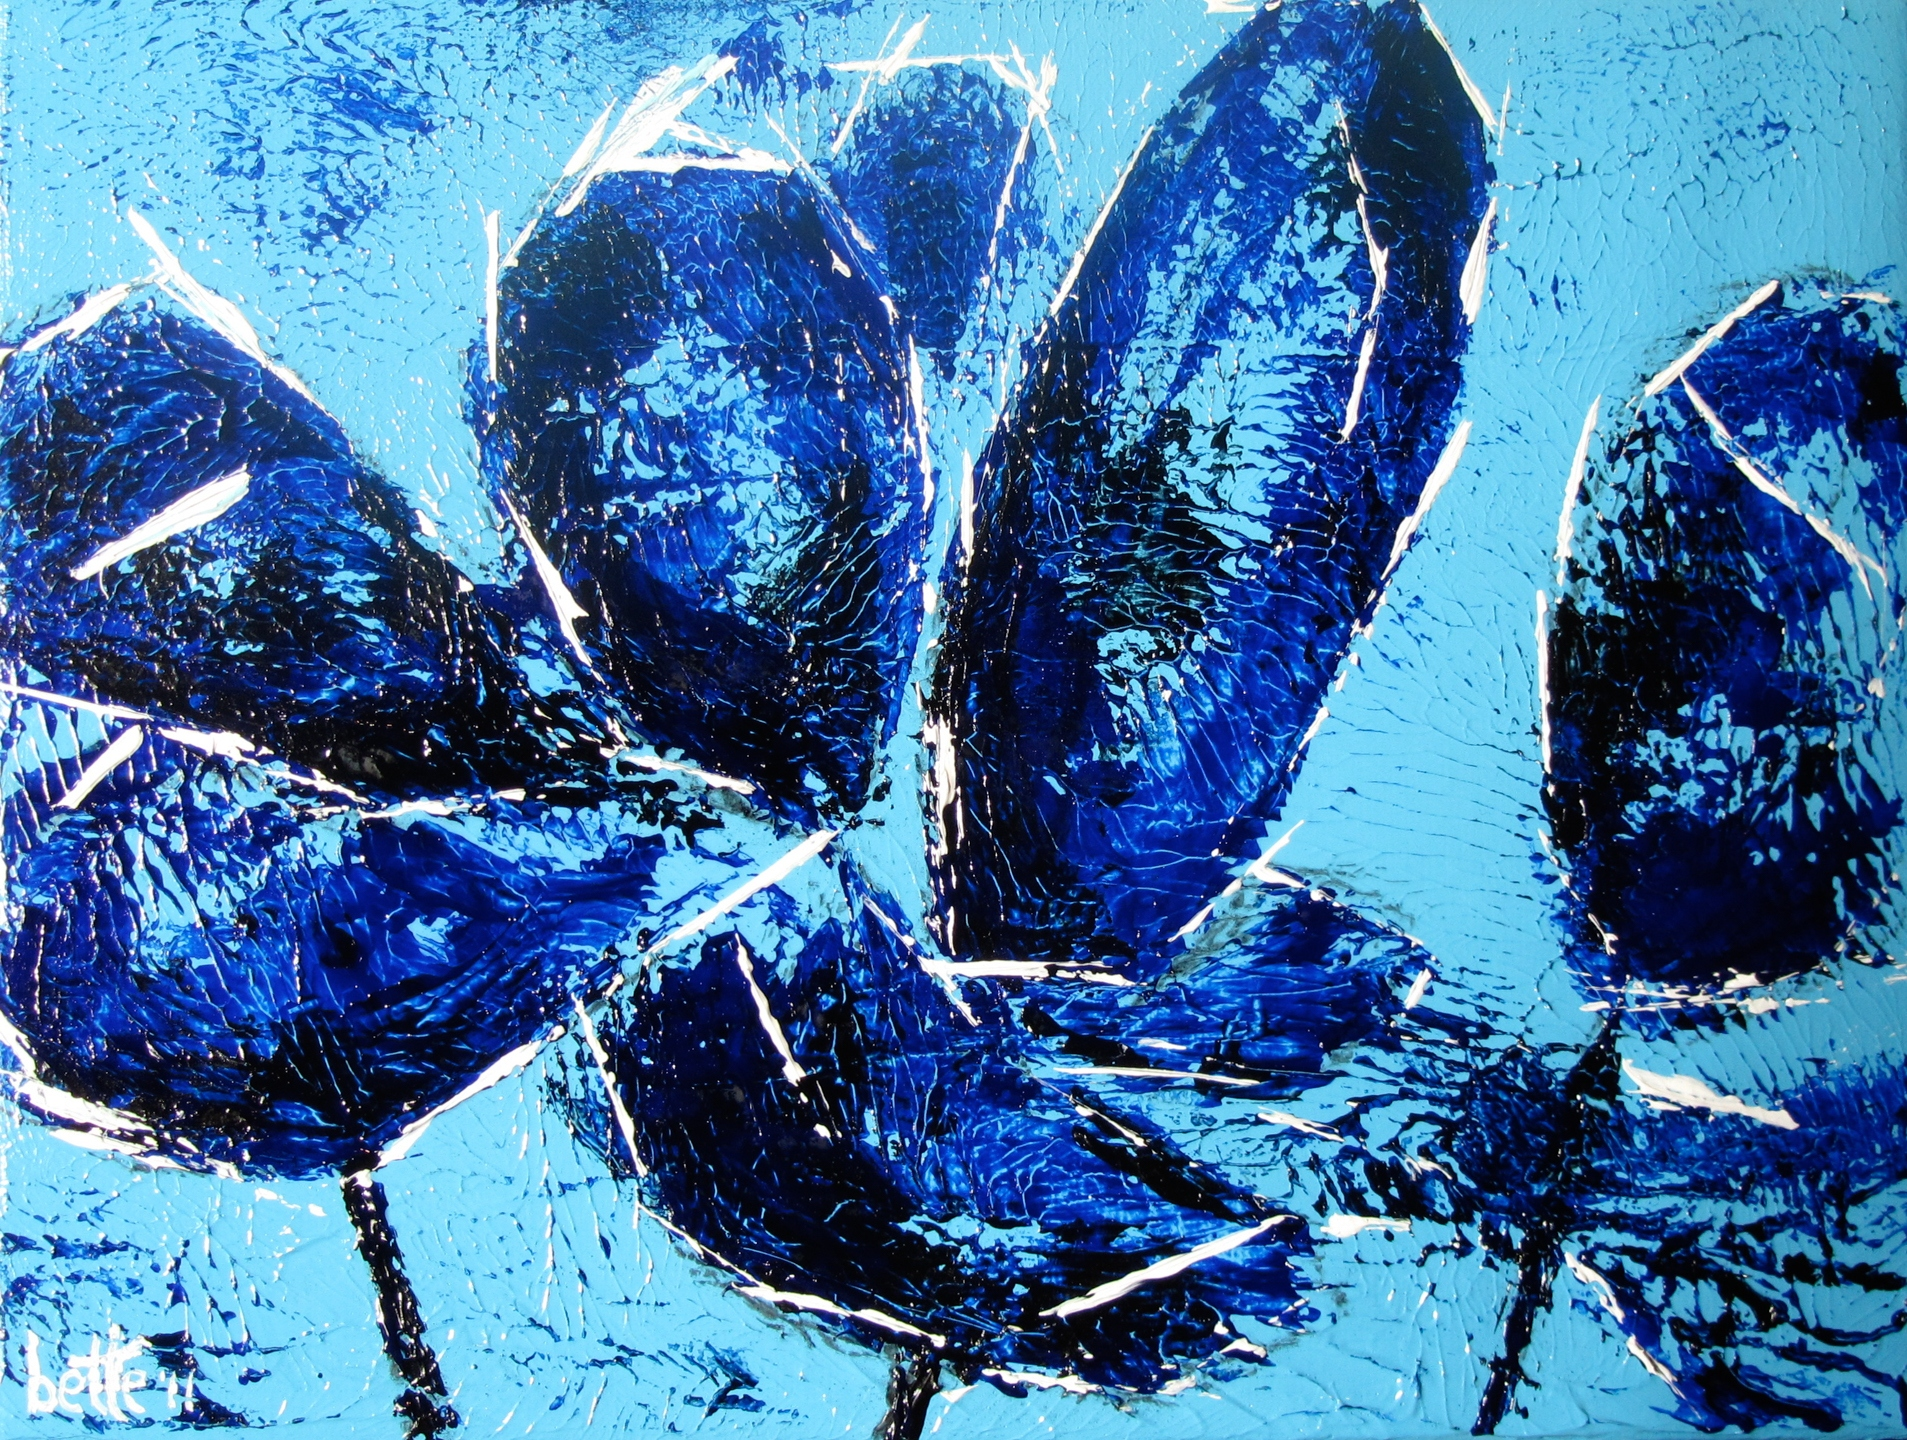 174 - Composy in blue